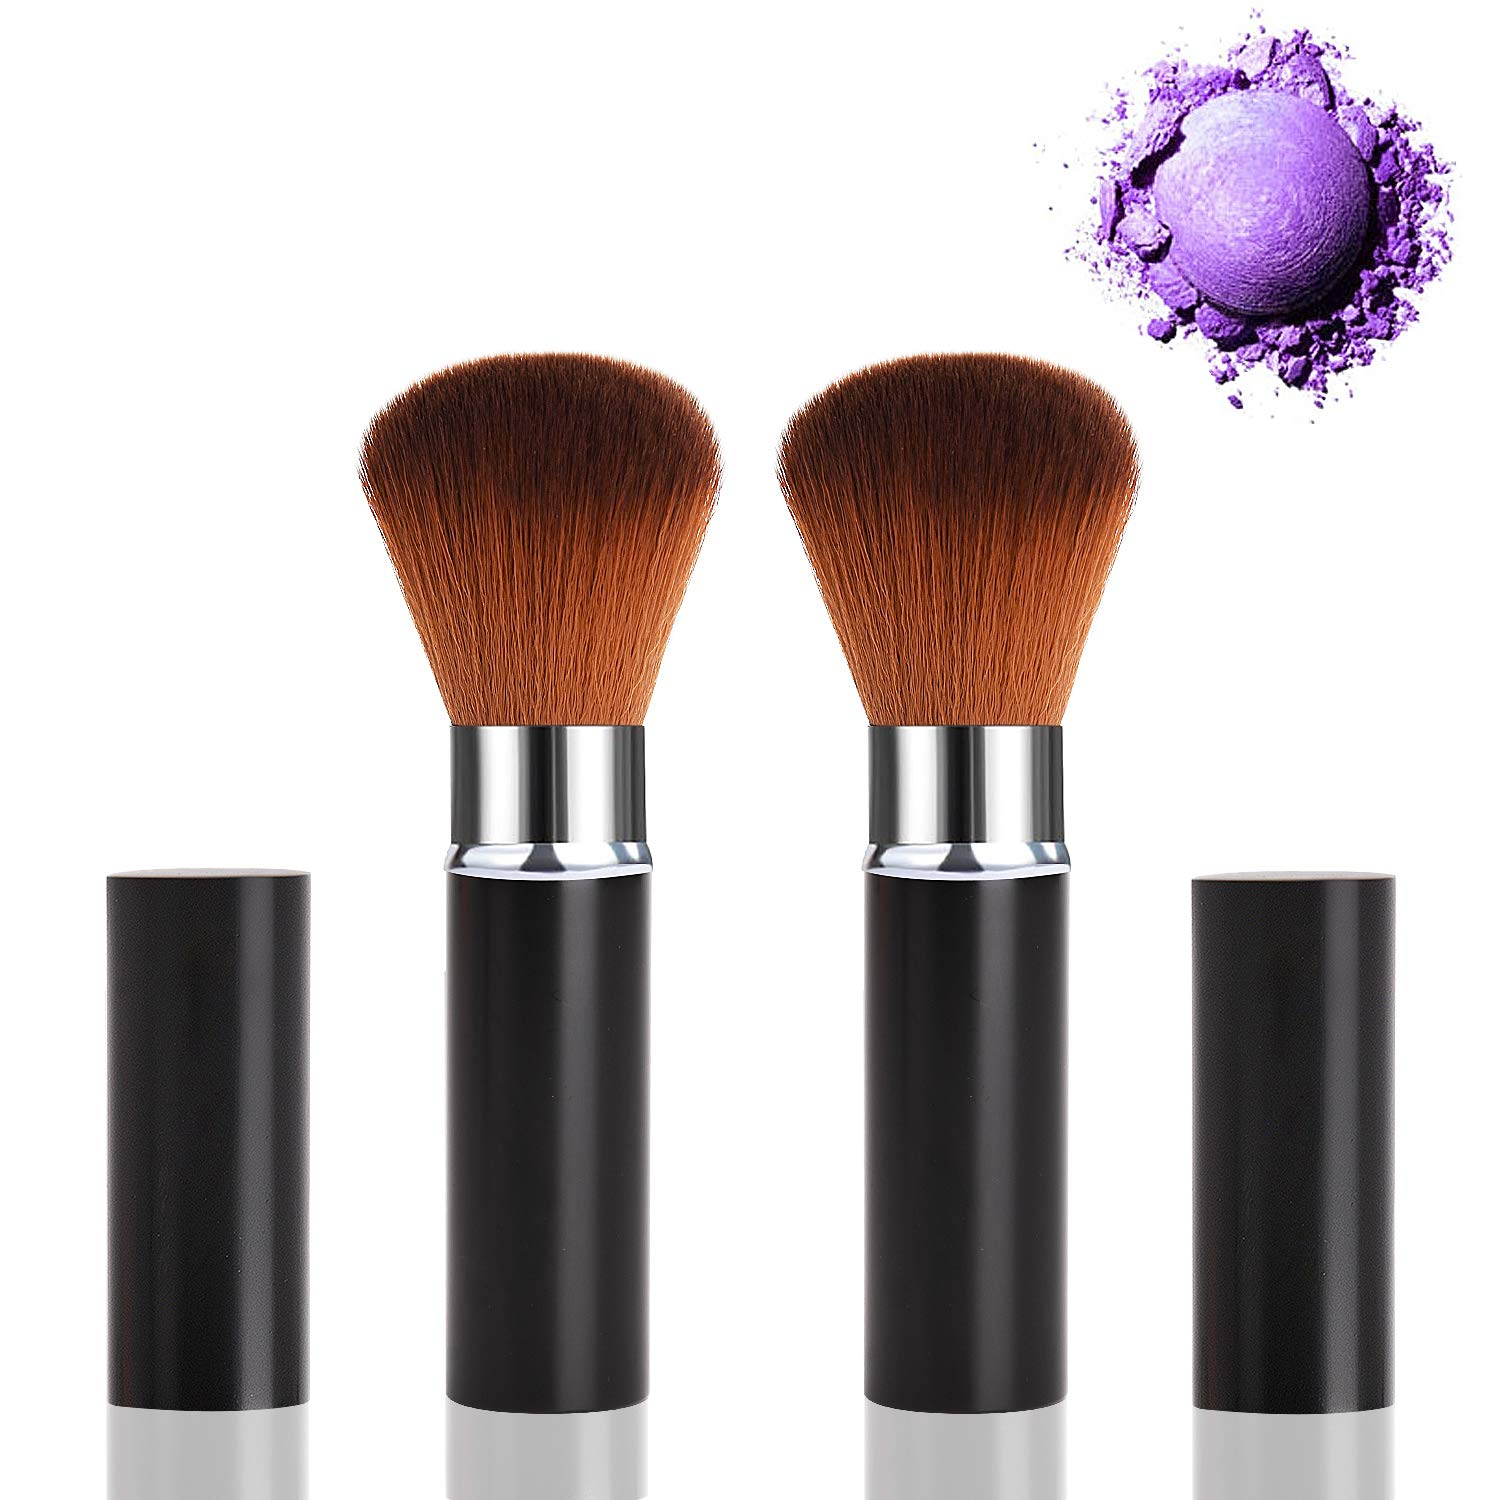 2 Pack Professional Kabuki Blush Brush, Soft Oval Foundation Brush Retractable Makeup Brushes Travel Kit Beauty Tool with Soft Synthetic Bristles for Face Cosmetic Contour Mineral Powder Concealer